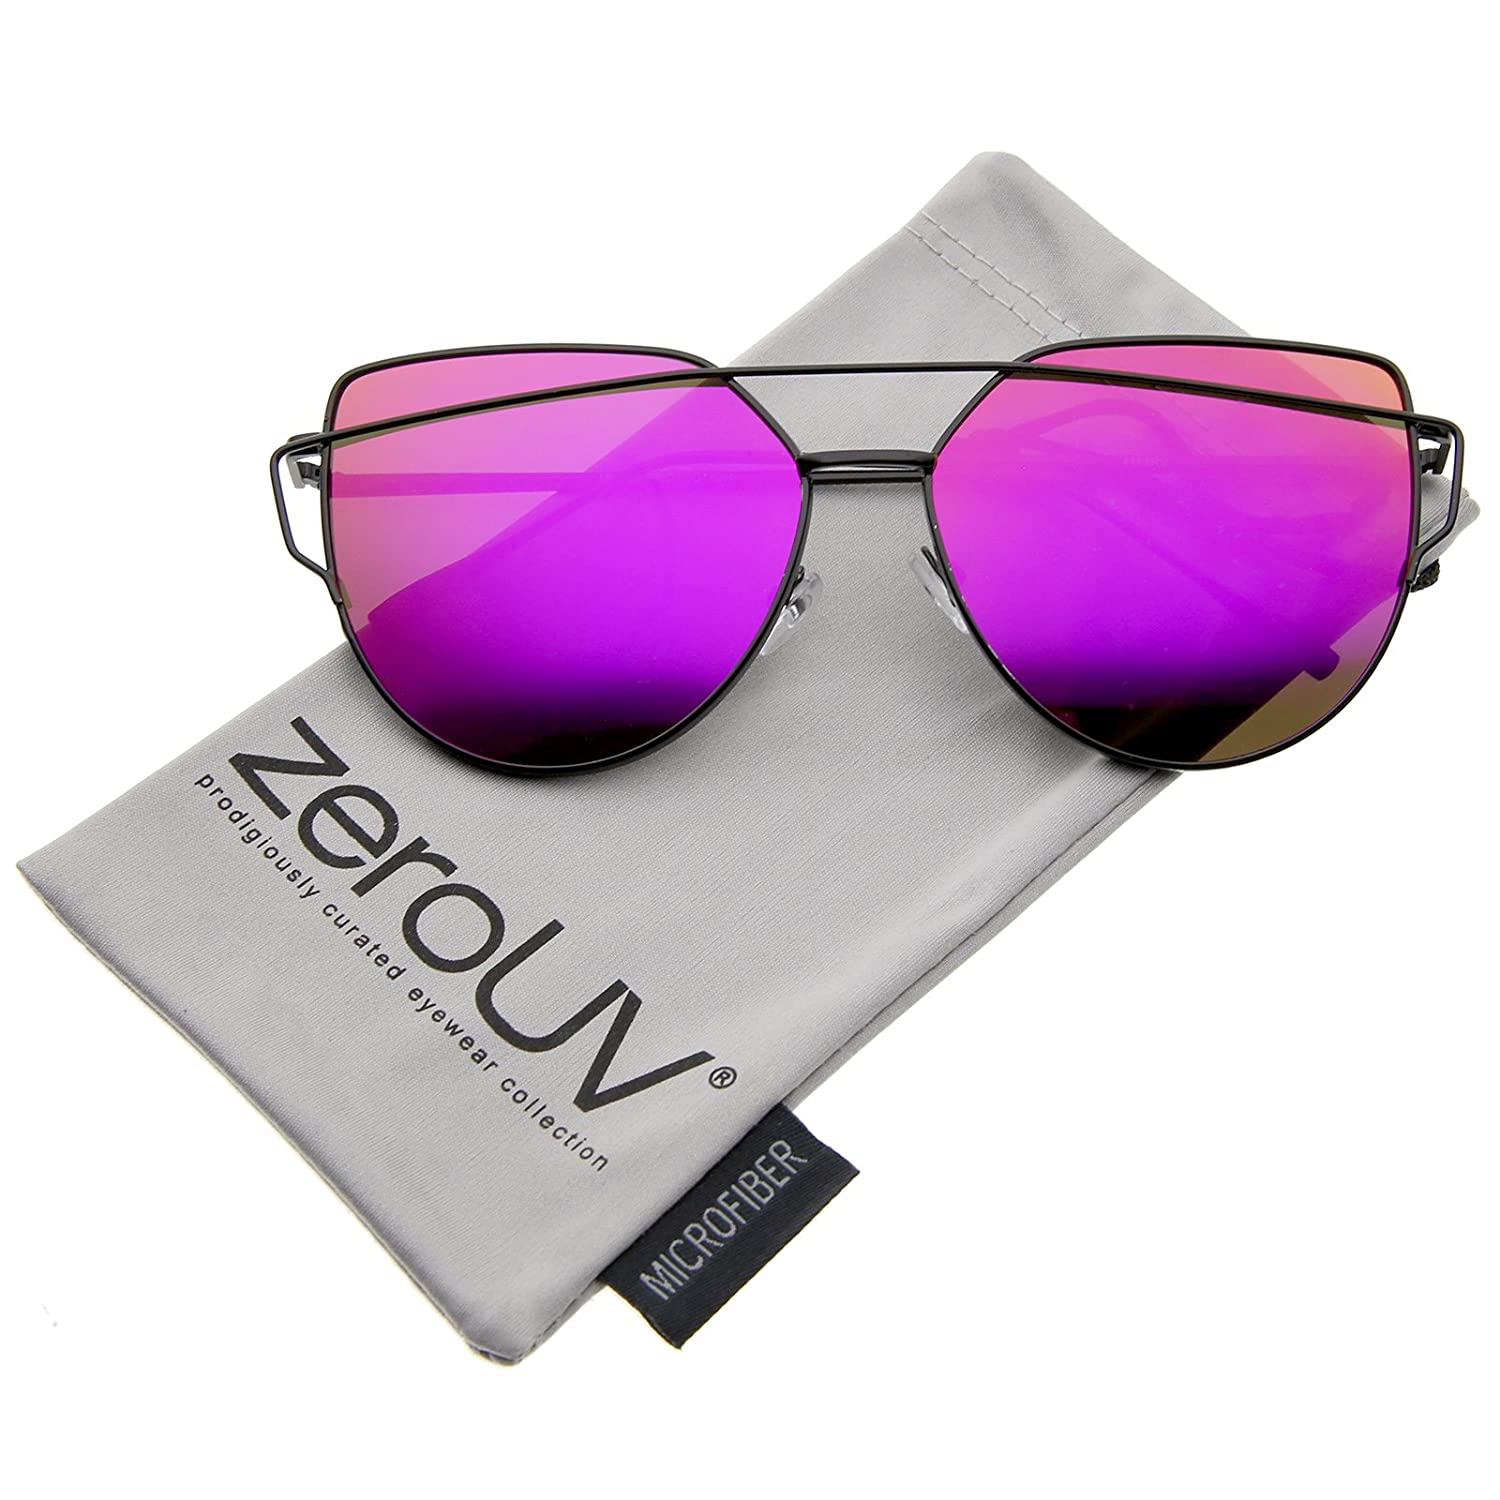 6274c1e3d89c Amazon.com  Oversize Metal Frame Thin Temple Color Mirror Flat Lens Aviator  Sunglasses 62mm (Black Magenta Mirror)  Clothing